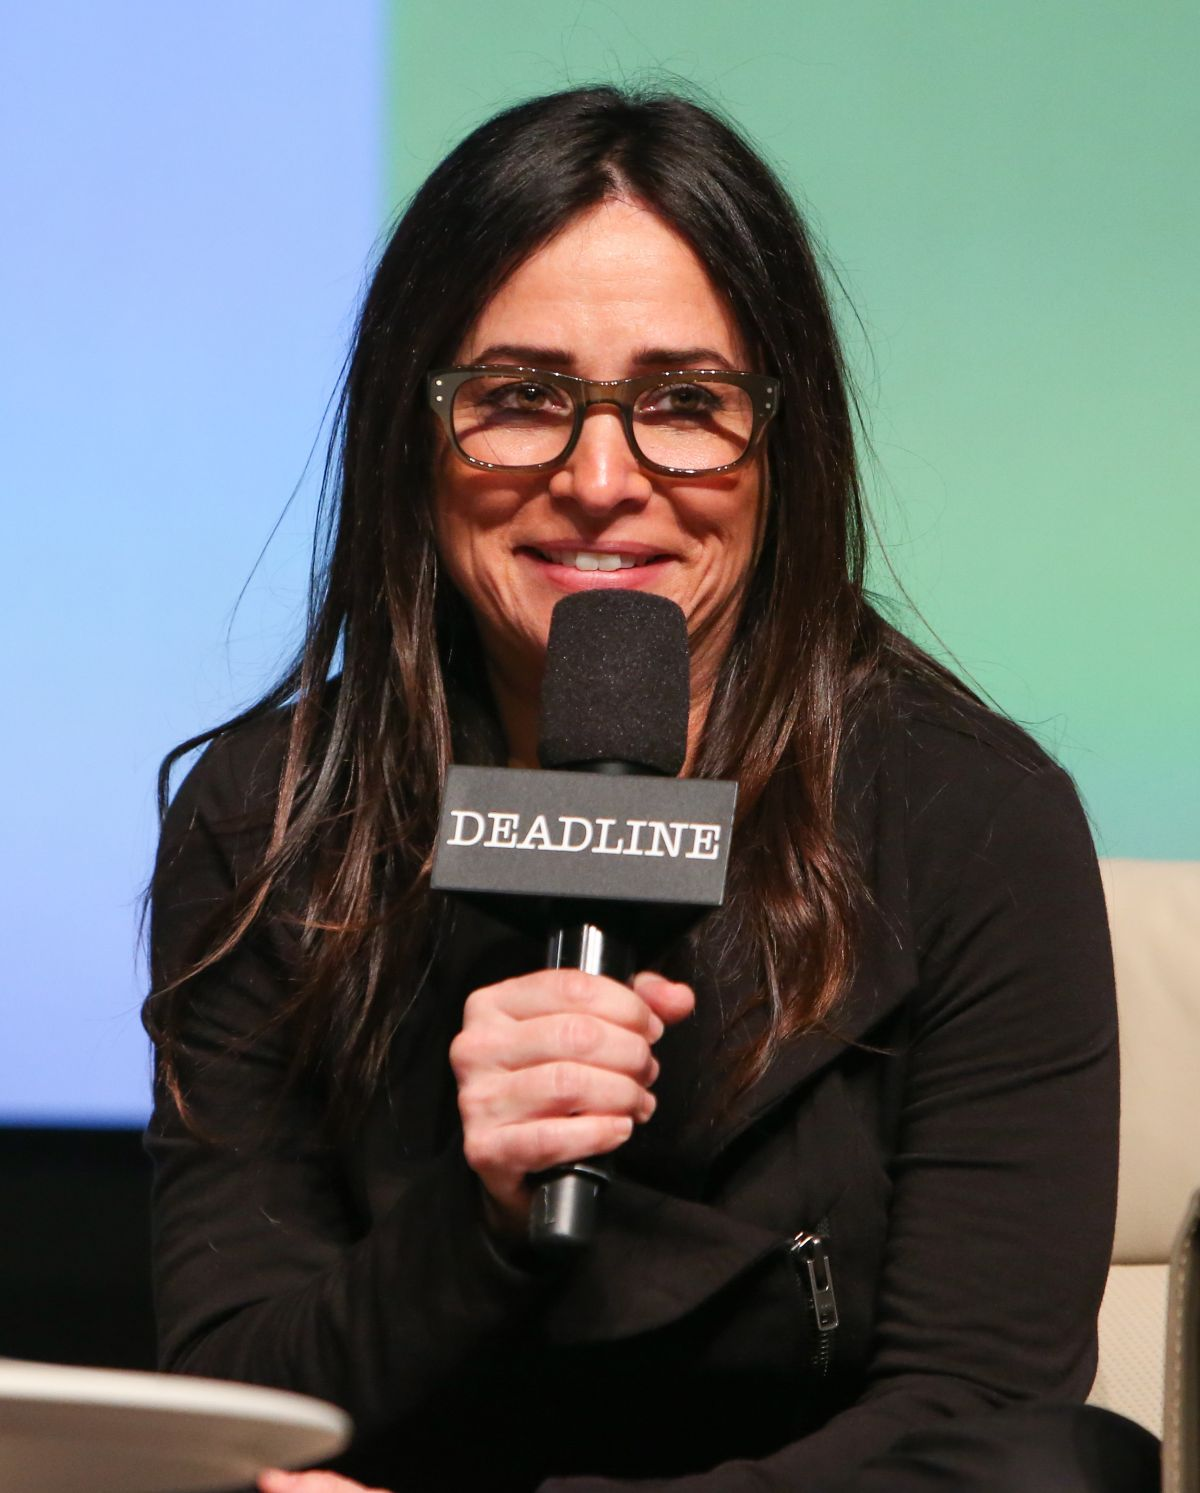 PAMELA ADLON at Contenders Emmys Presented by Deadline in Los Angeles 04/09/2017